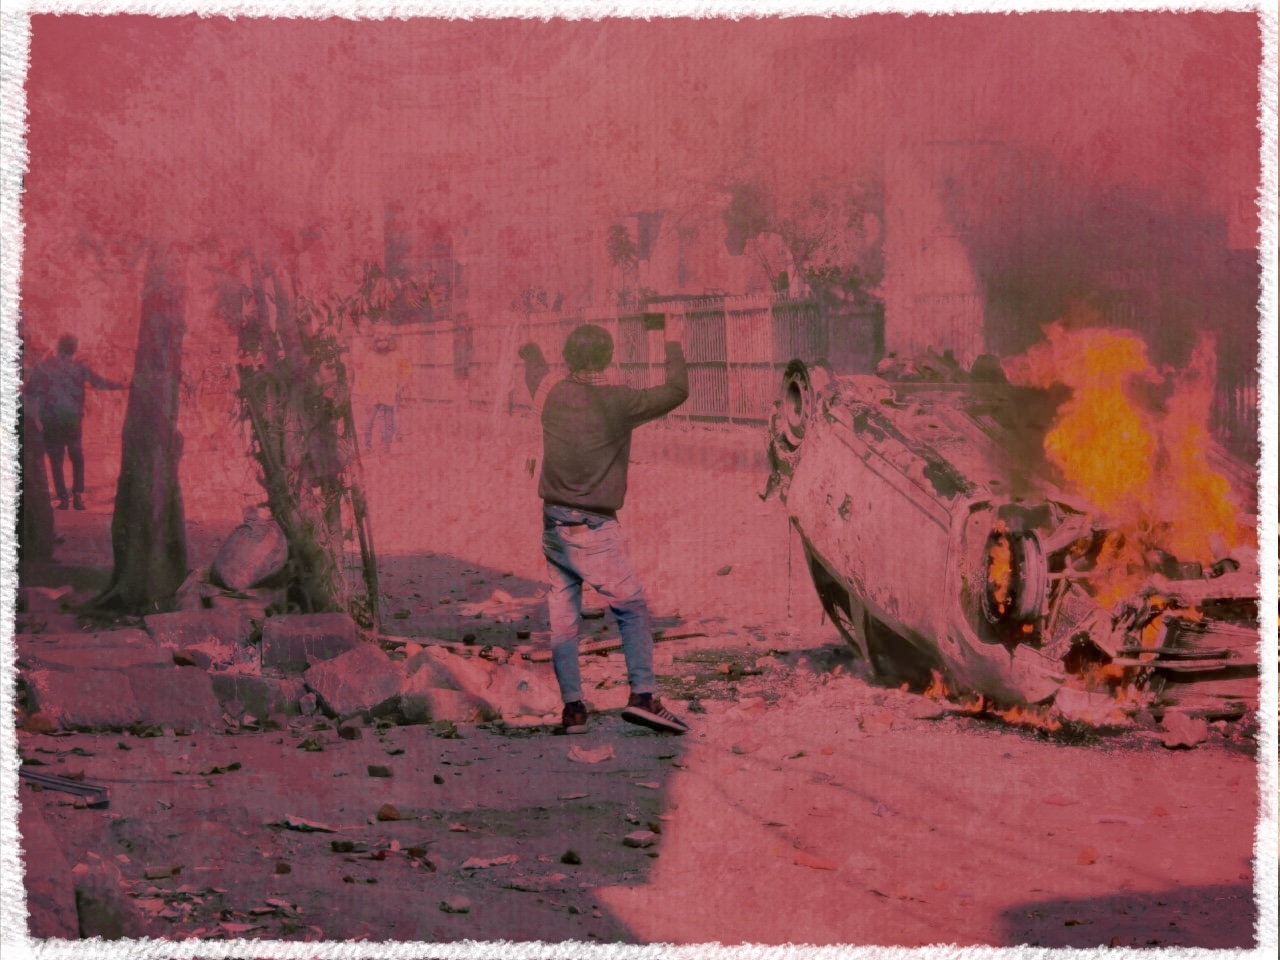 'Delhi Riot Probe Directed Towards One End': Court Pulls Up Police